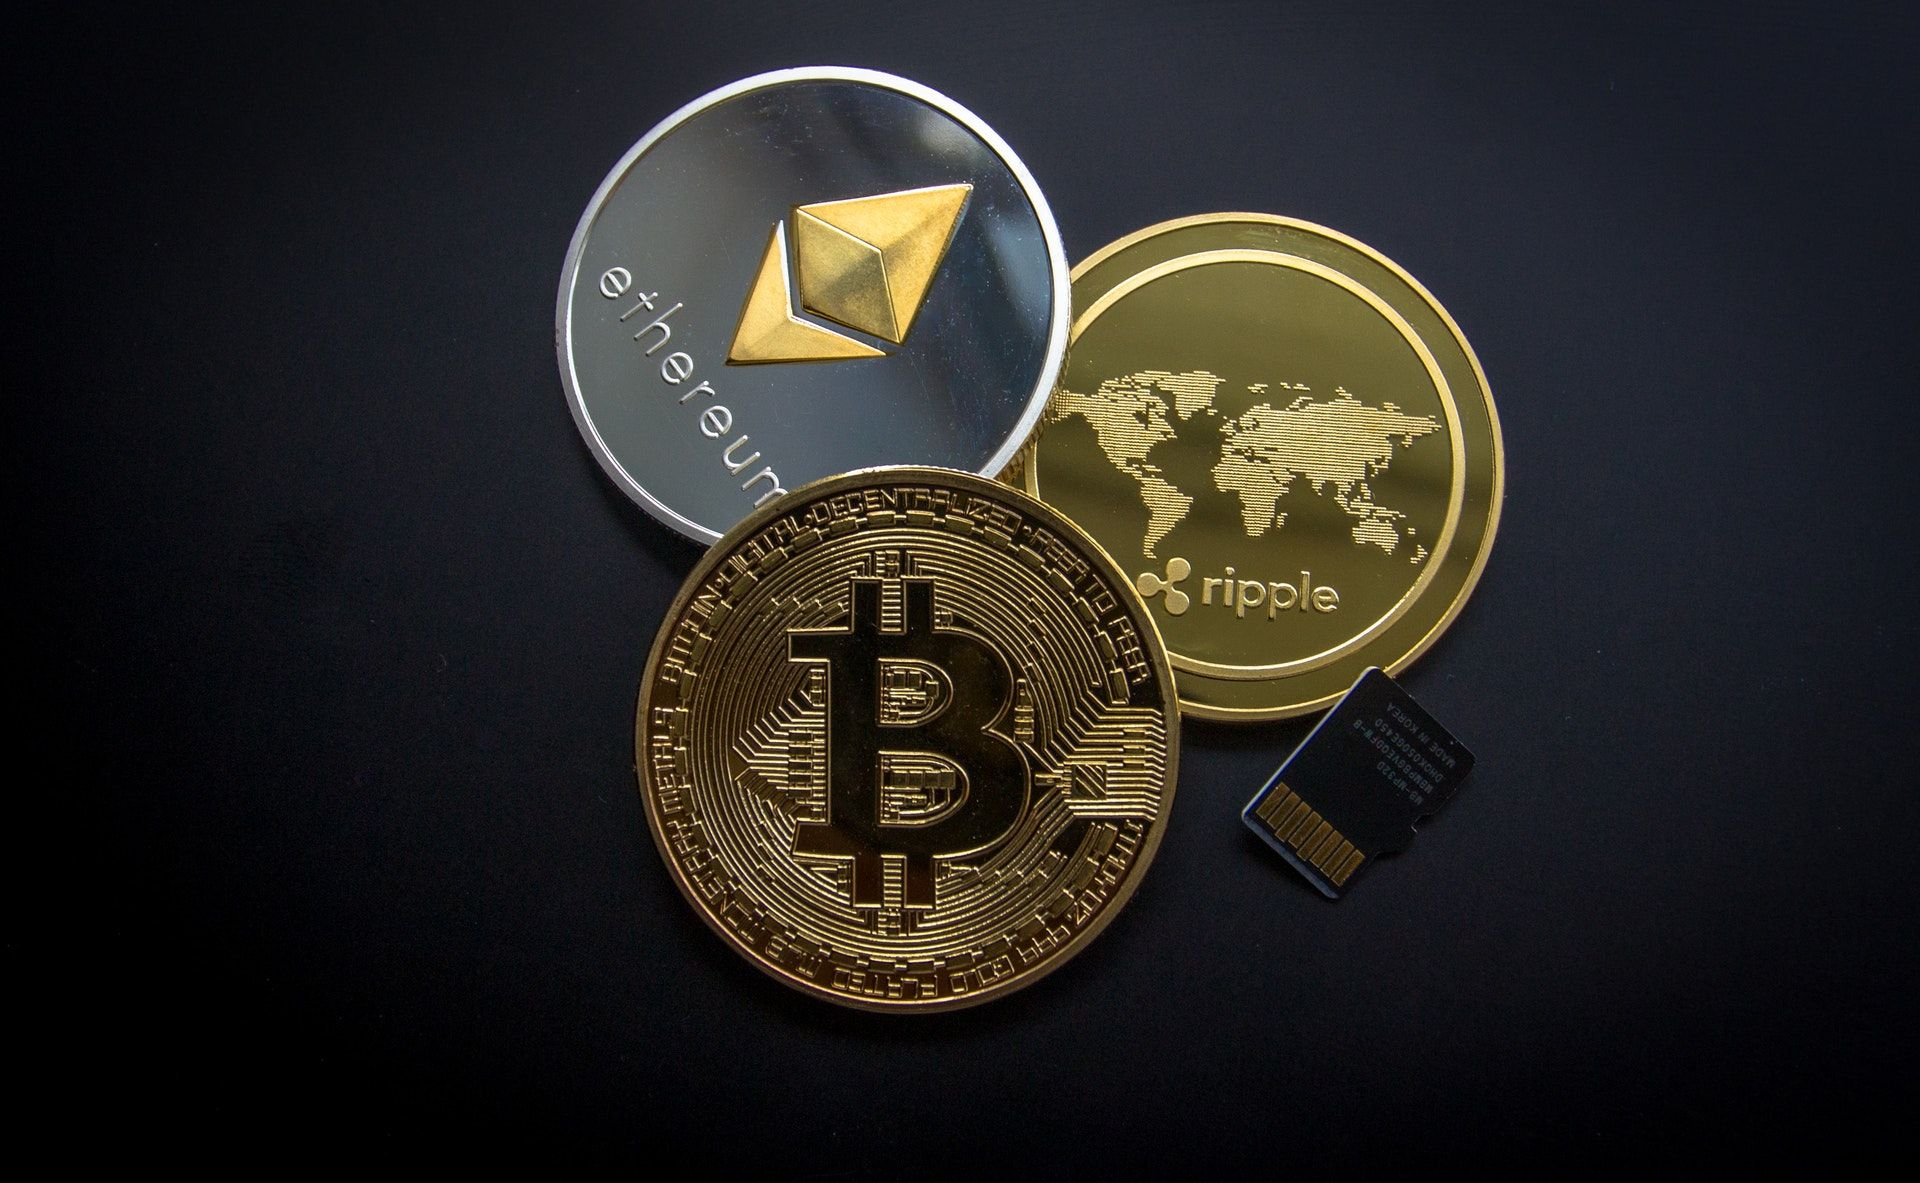 cryptocurrency with huge potential